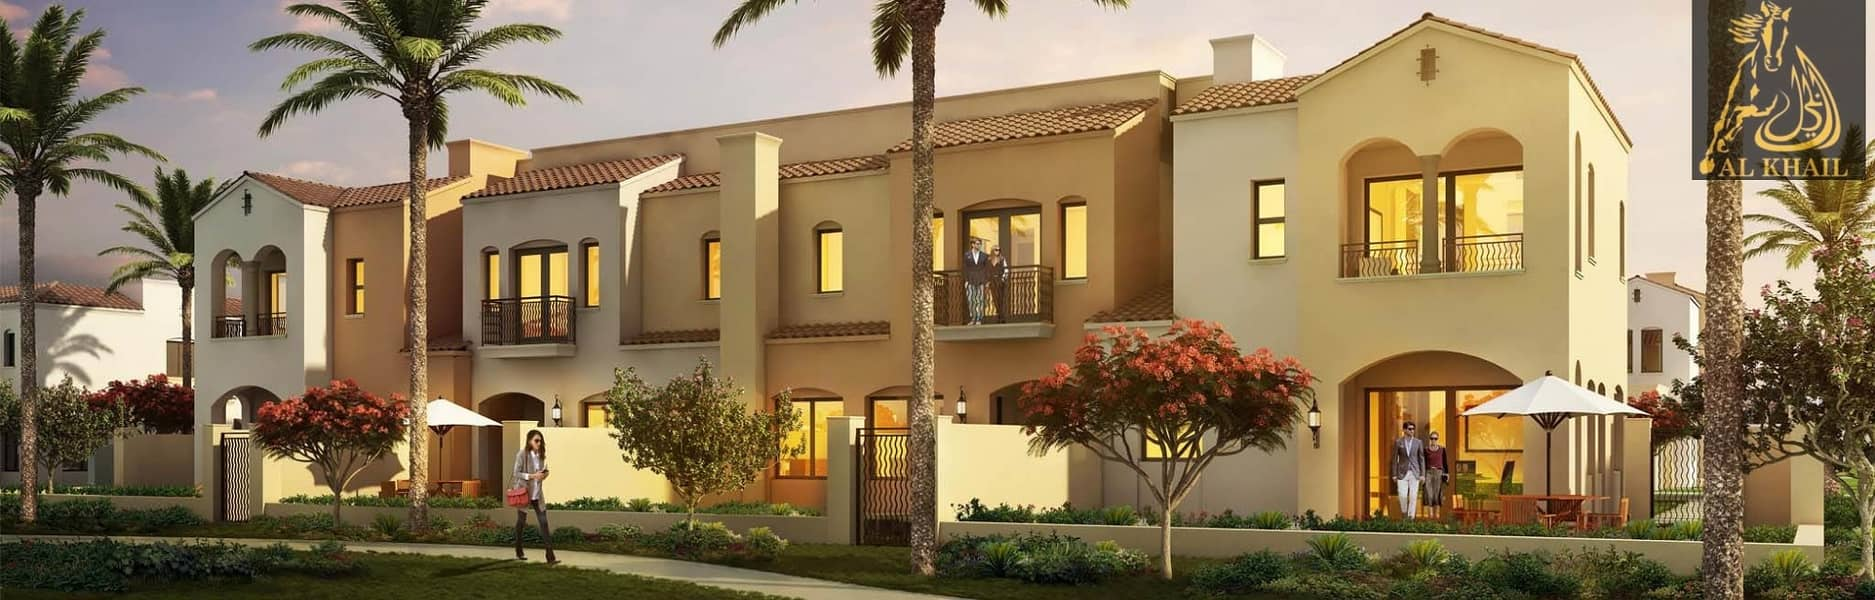 9 Beautiful Townhouse in Serena Dubailand Easy Payment Plan 5 Years Post Handover